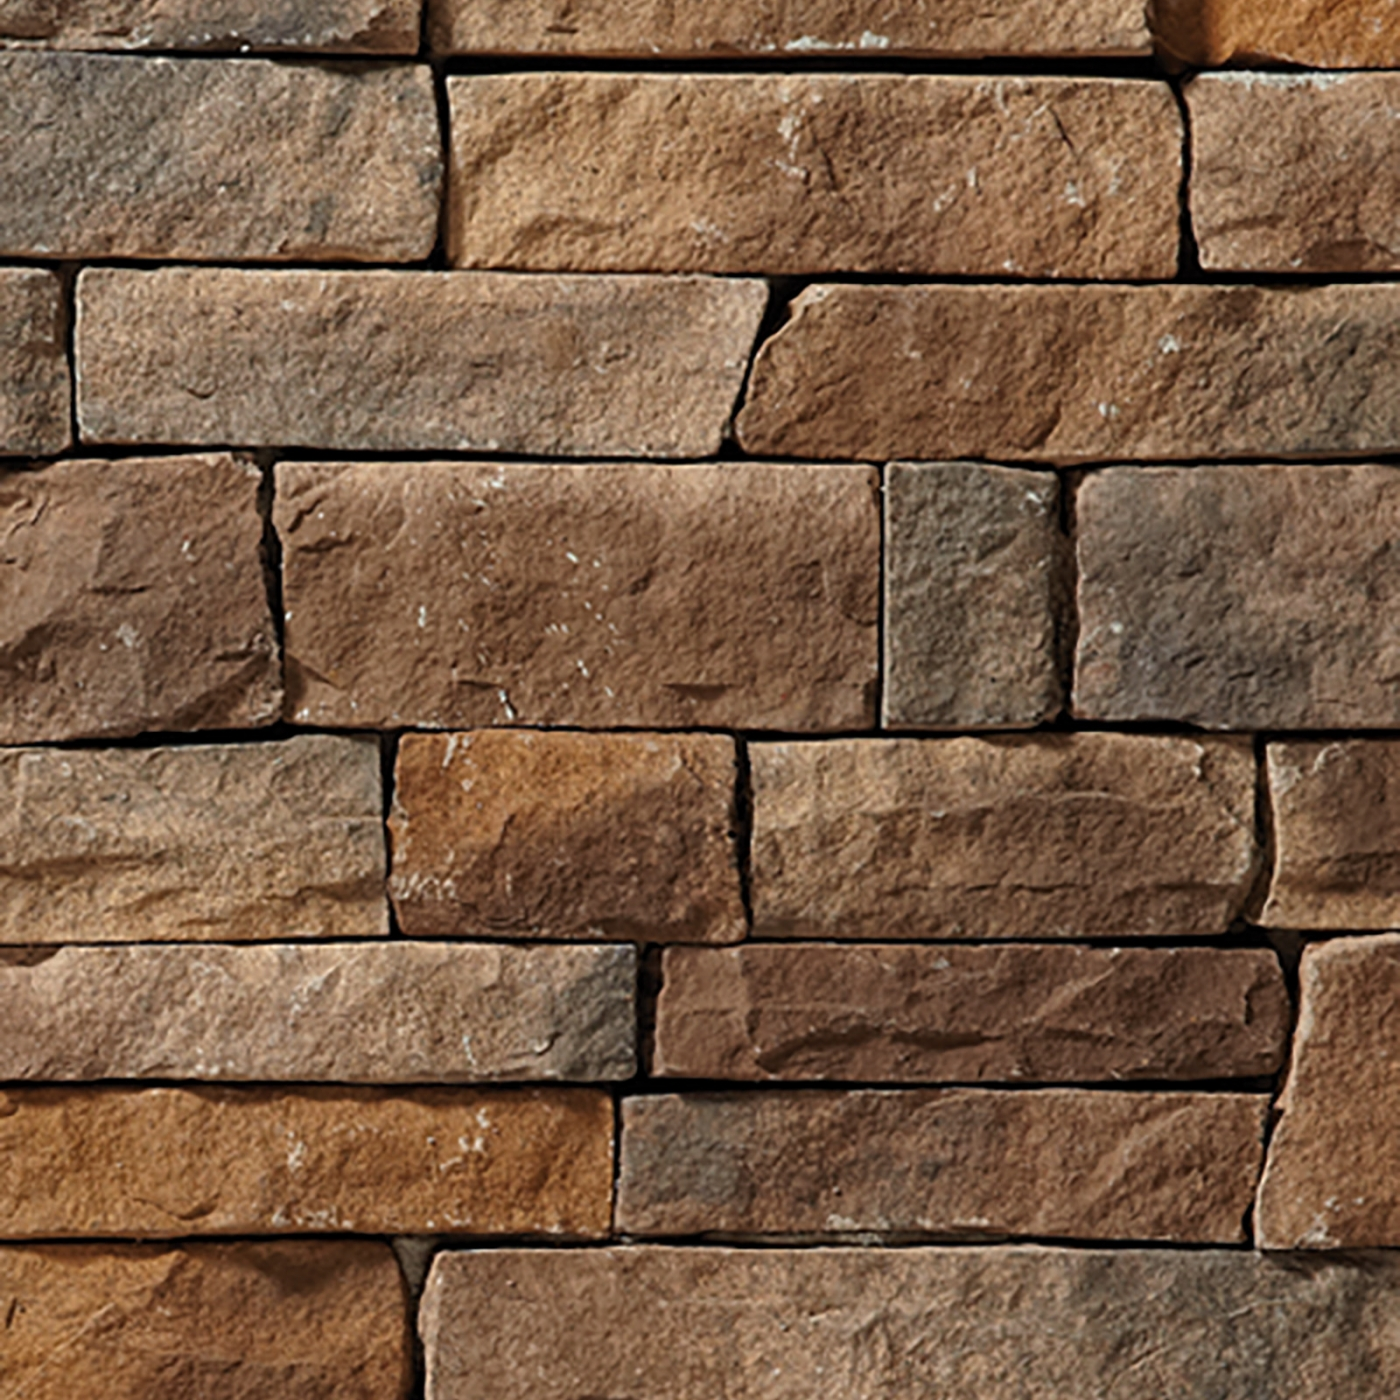 Mississippi Rubble Cut Stone Stone Veneer from Environmental StoneWorks